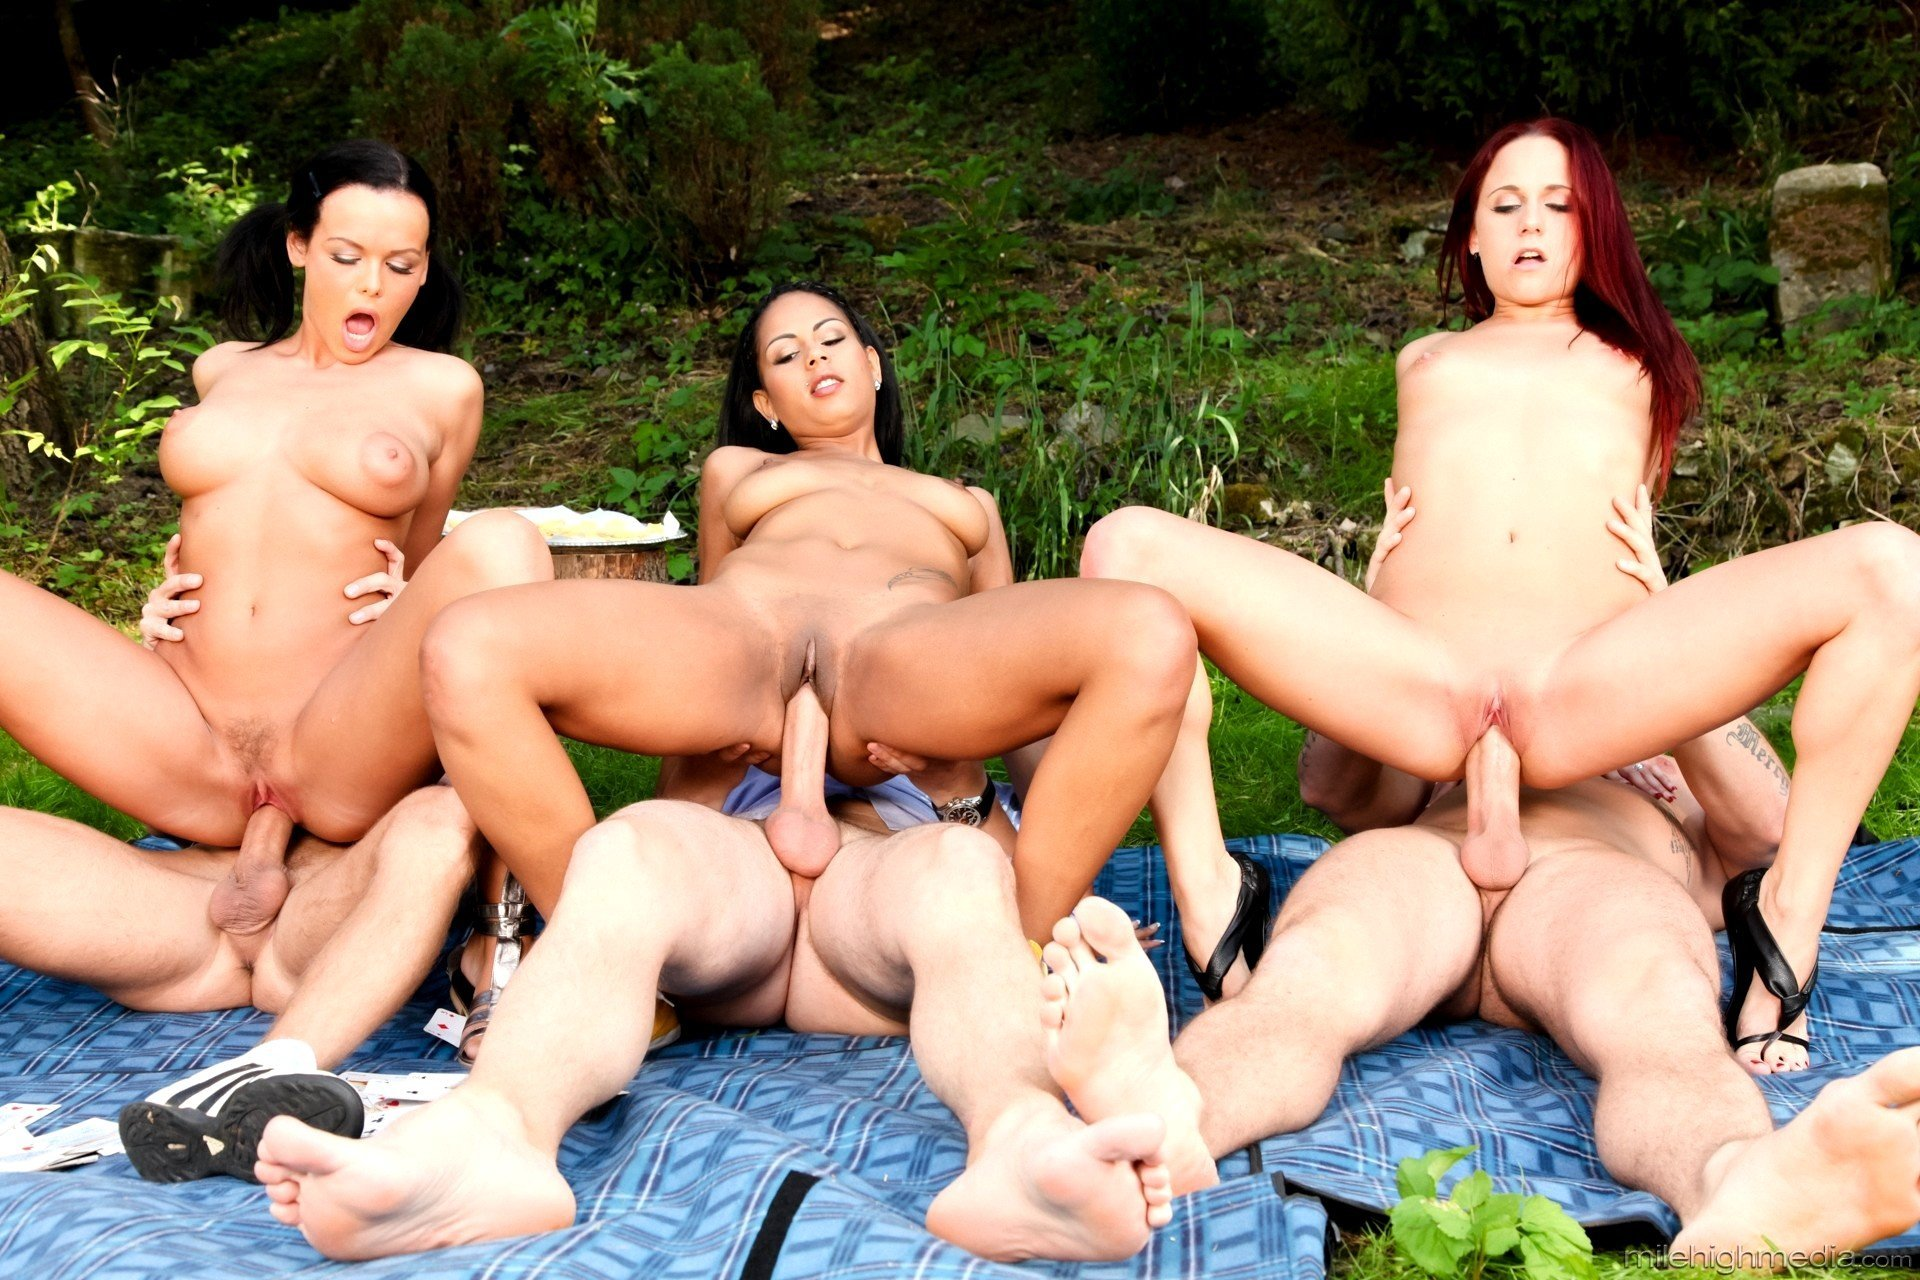 Amazing Outdoor Group Sex By Large Group